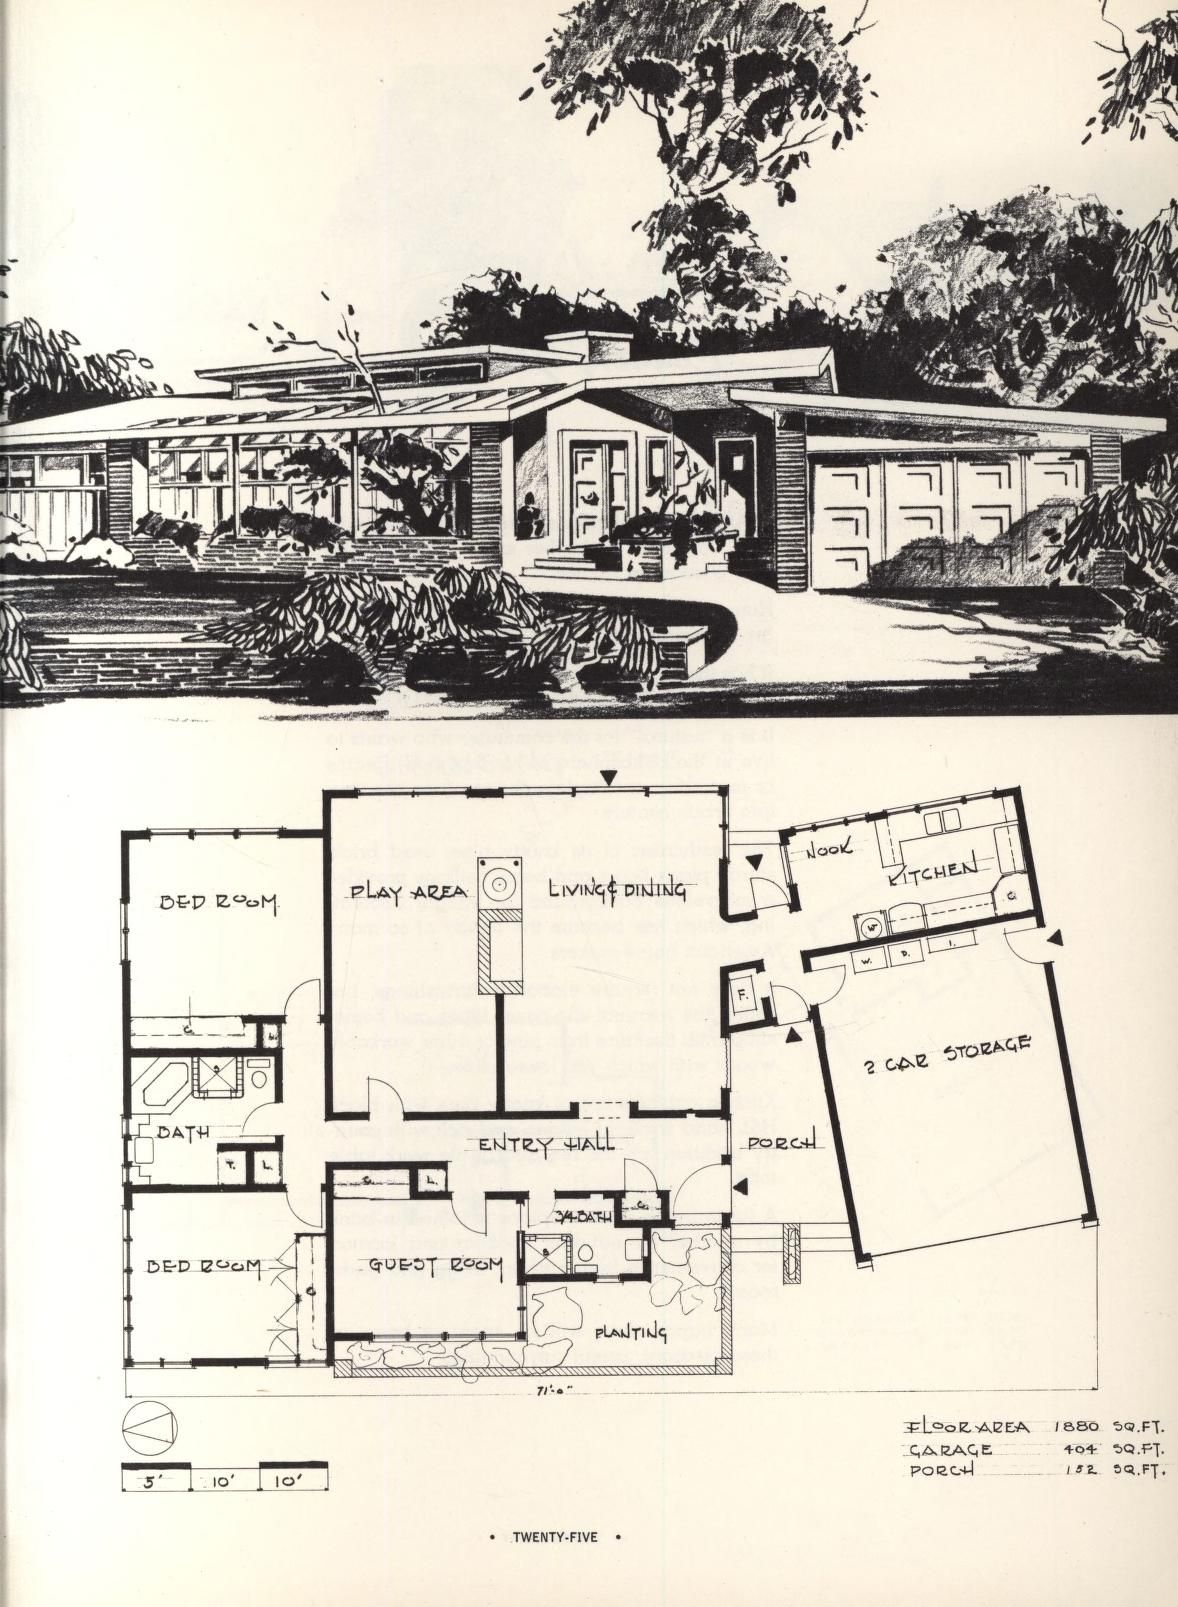 Wisdom in Homes, 1951. W. E. Lindman From the Association for Preservation Technology (APT) - Building Technology Heritage Library, an online archive of period architectural trade catalogs. Select an era or material and become an architectural time traveler.